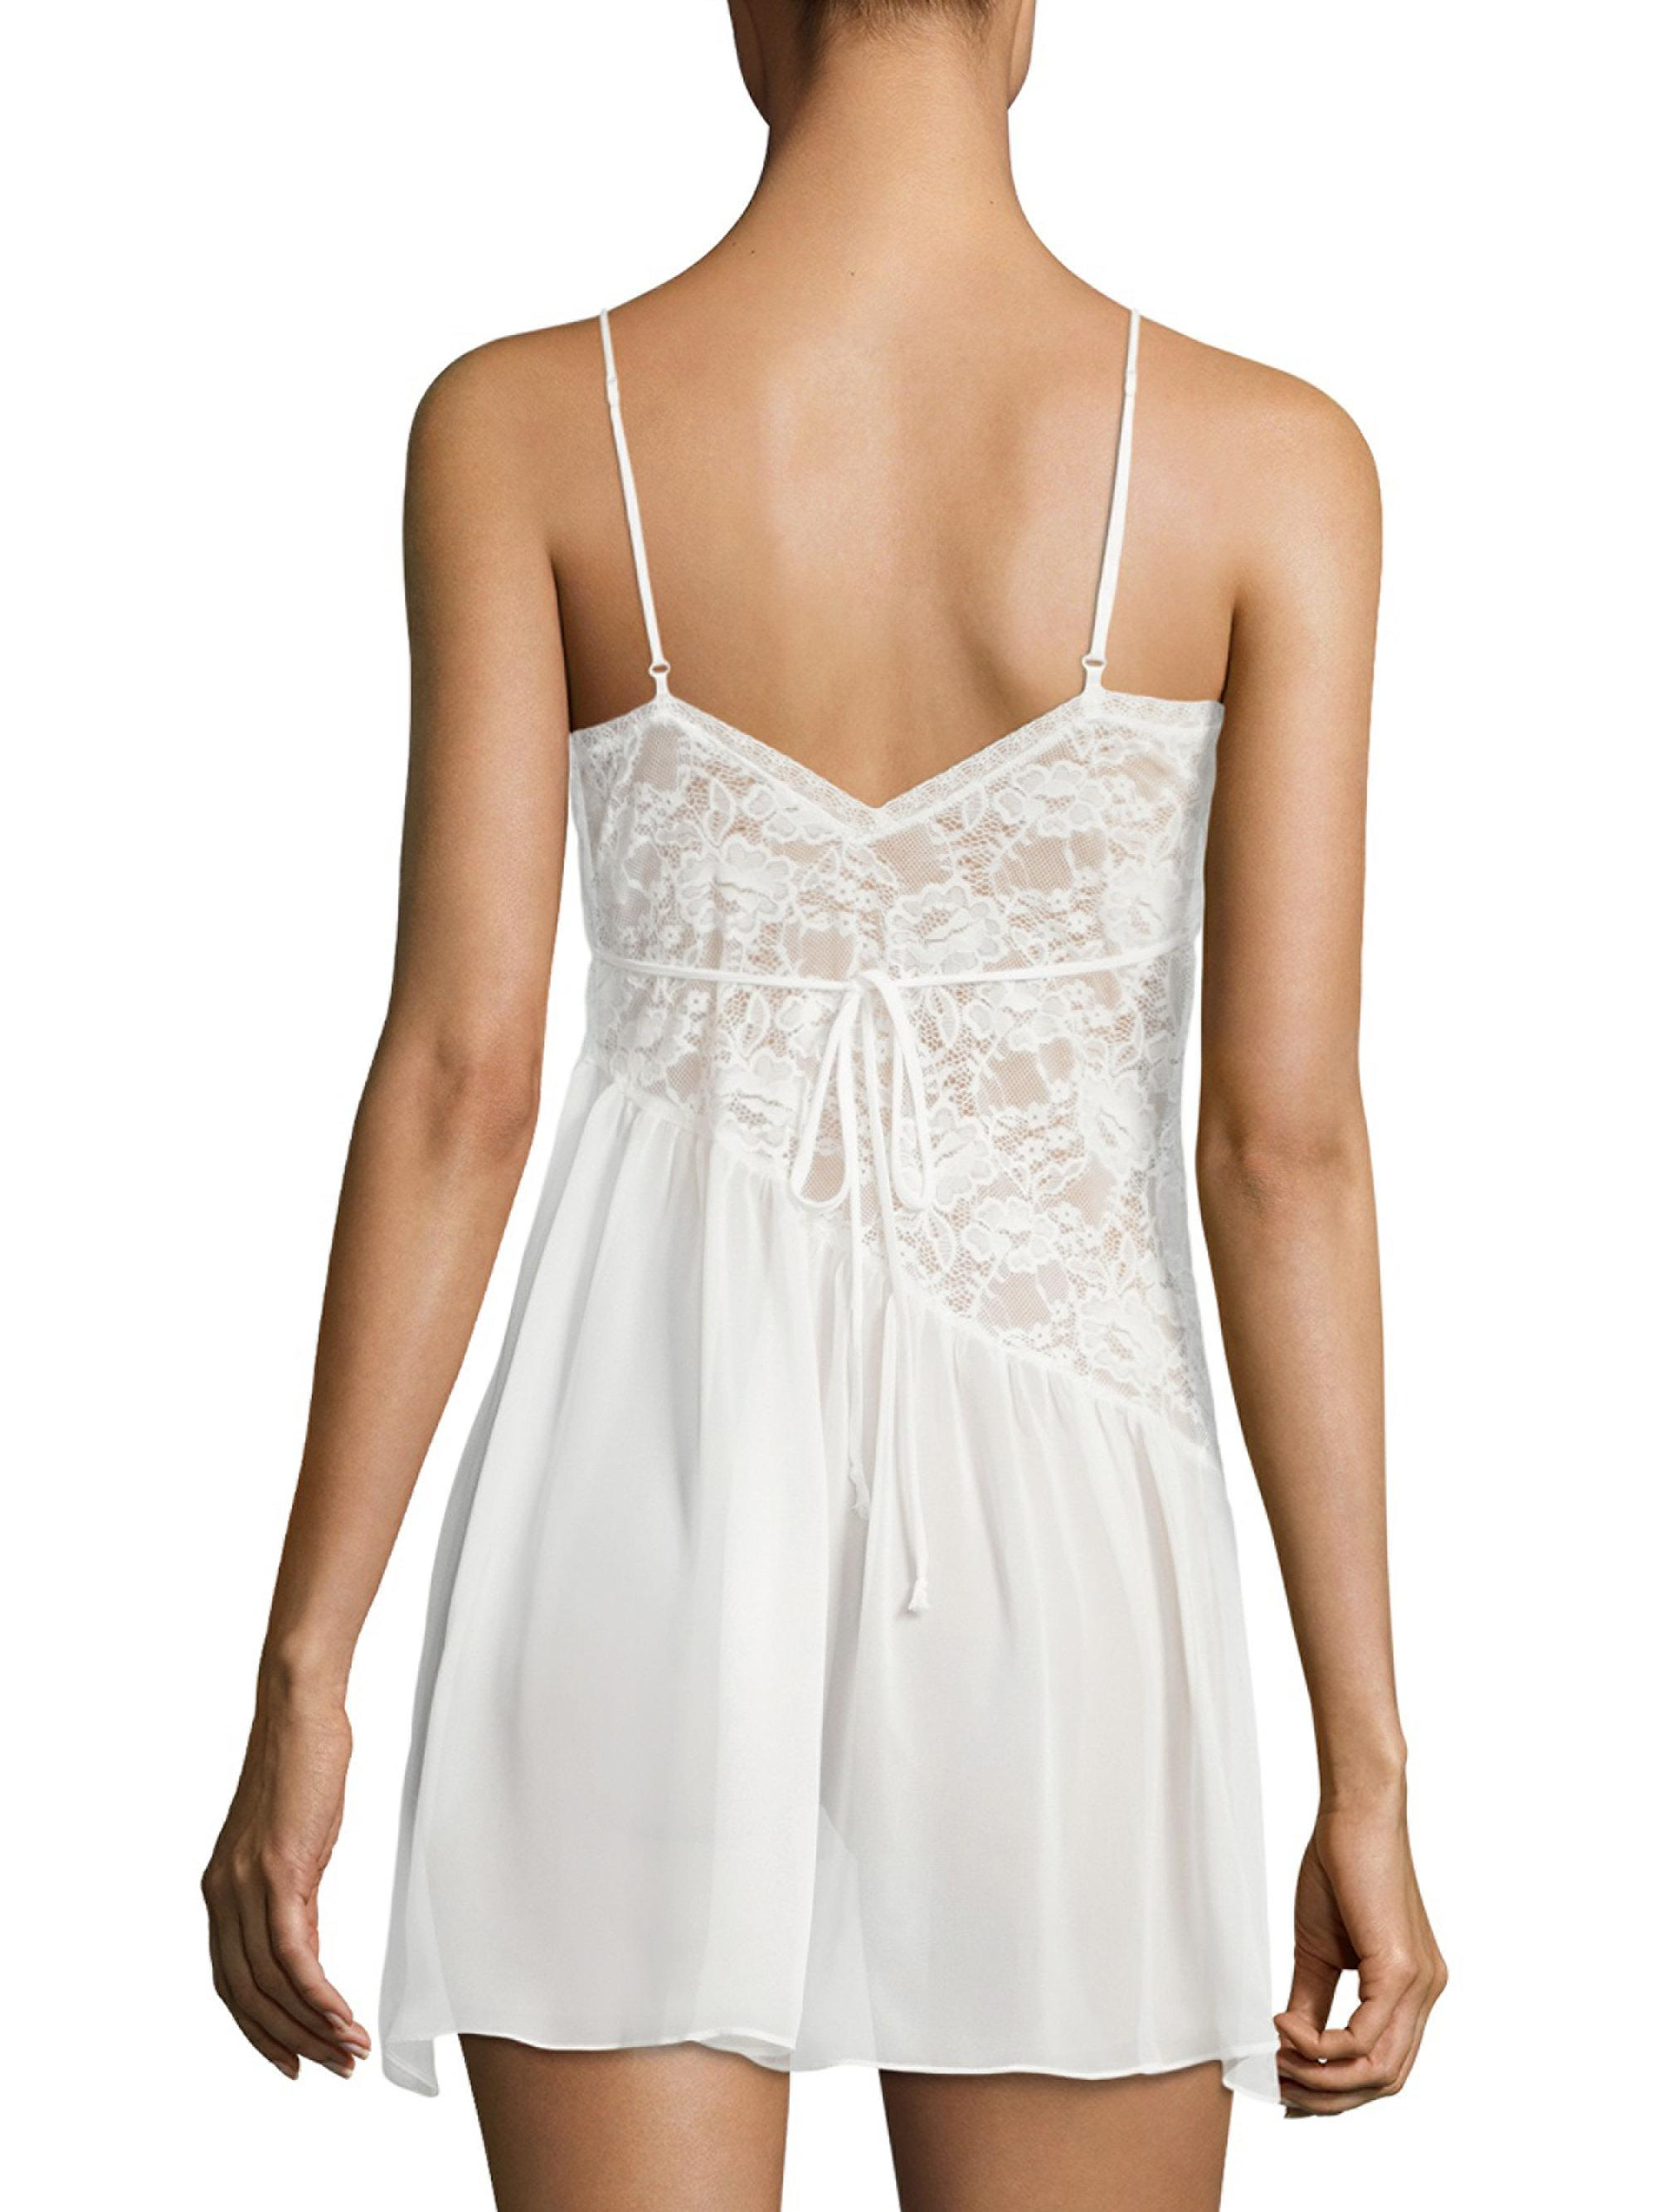 Lyst - Jonquil Daydream Ruffled Chemise in White 3c7d20924